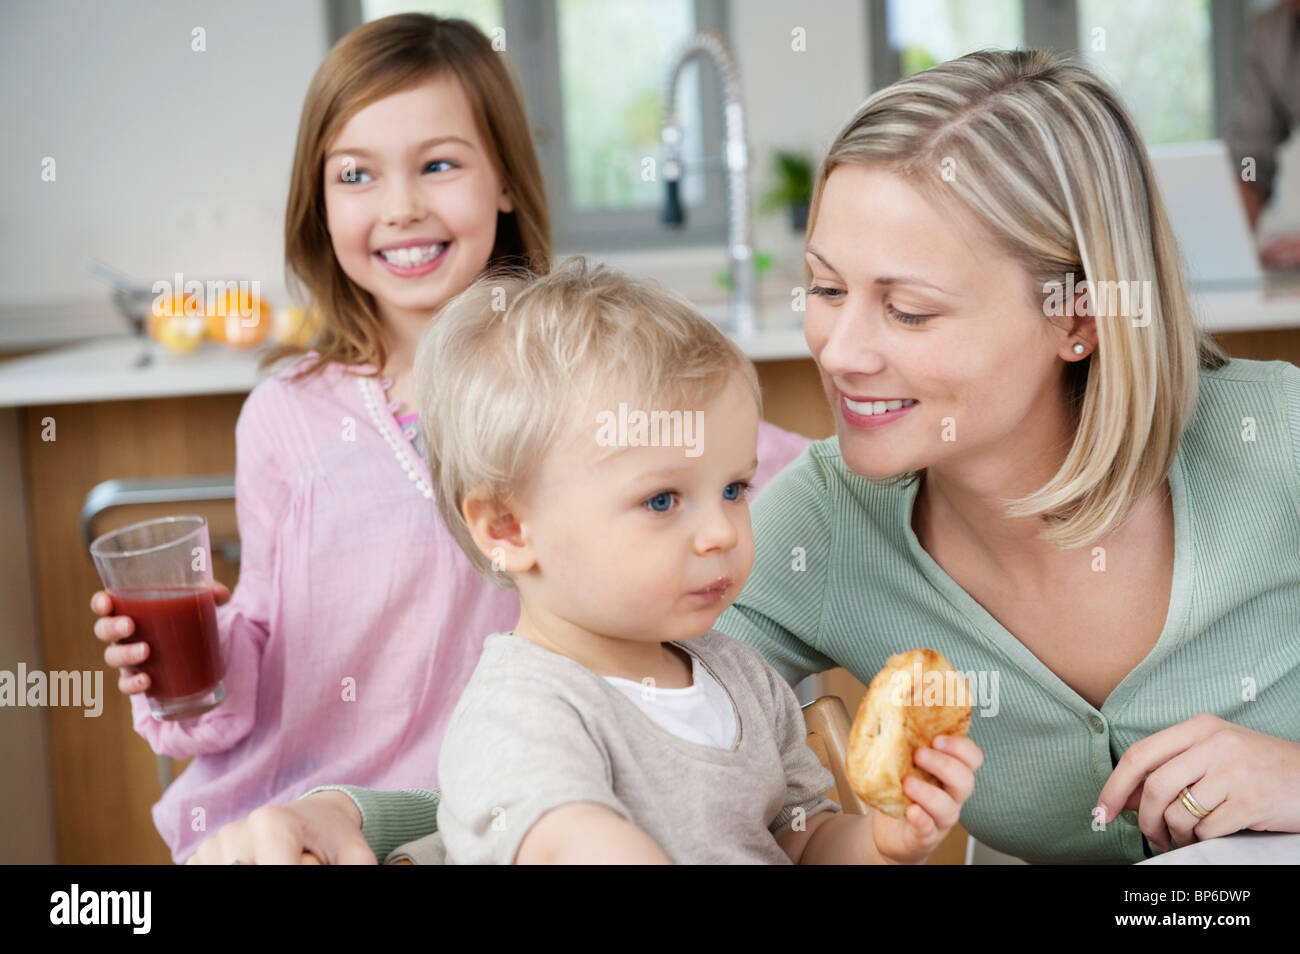 Family at a breakfast table - Stock Image